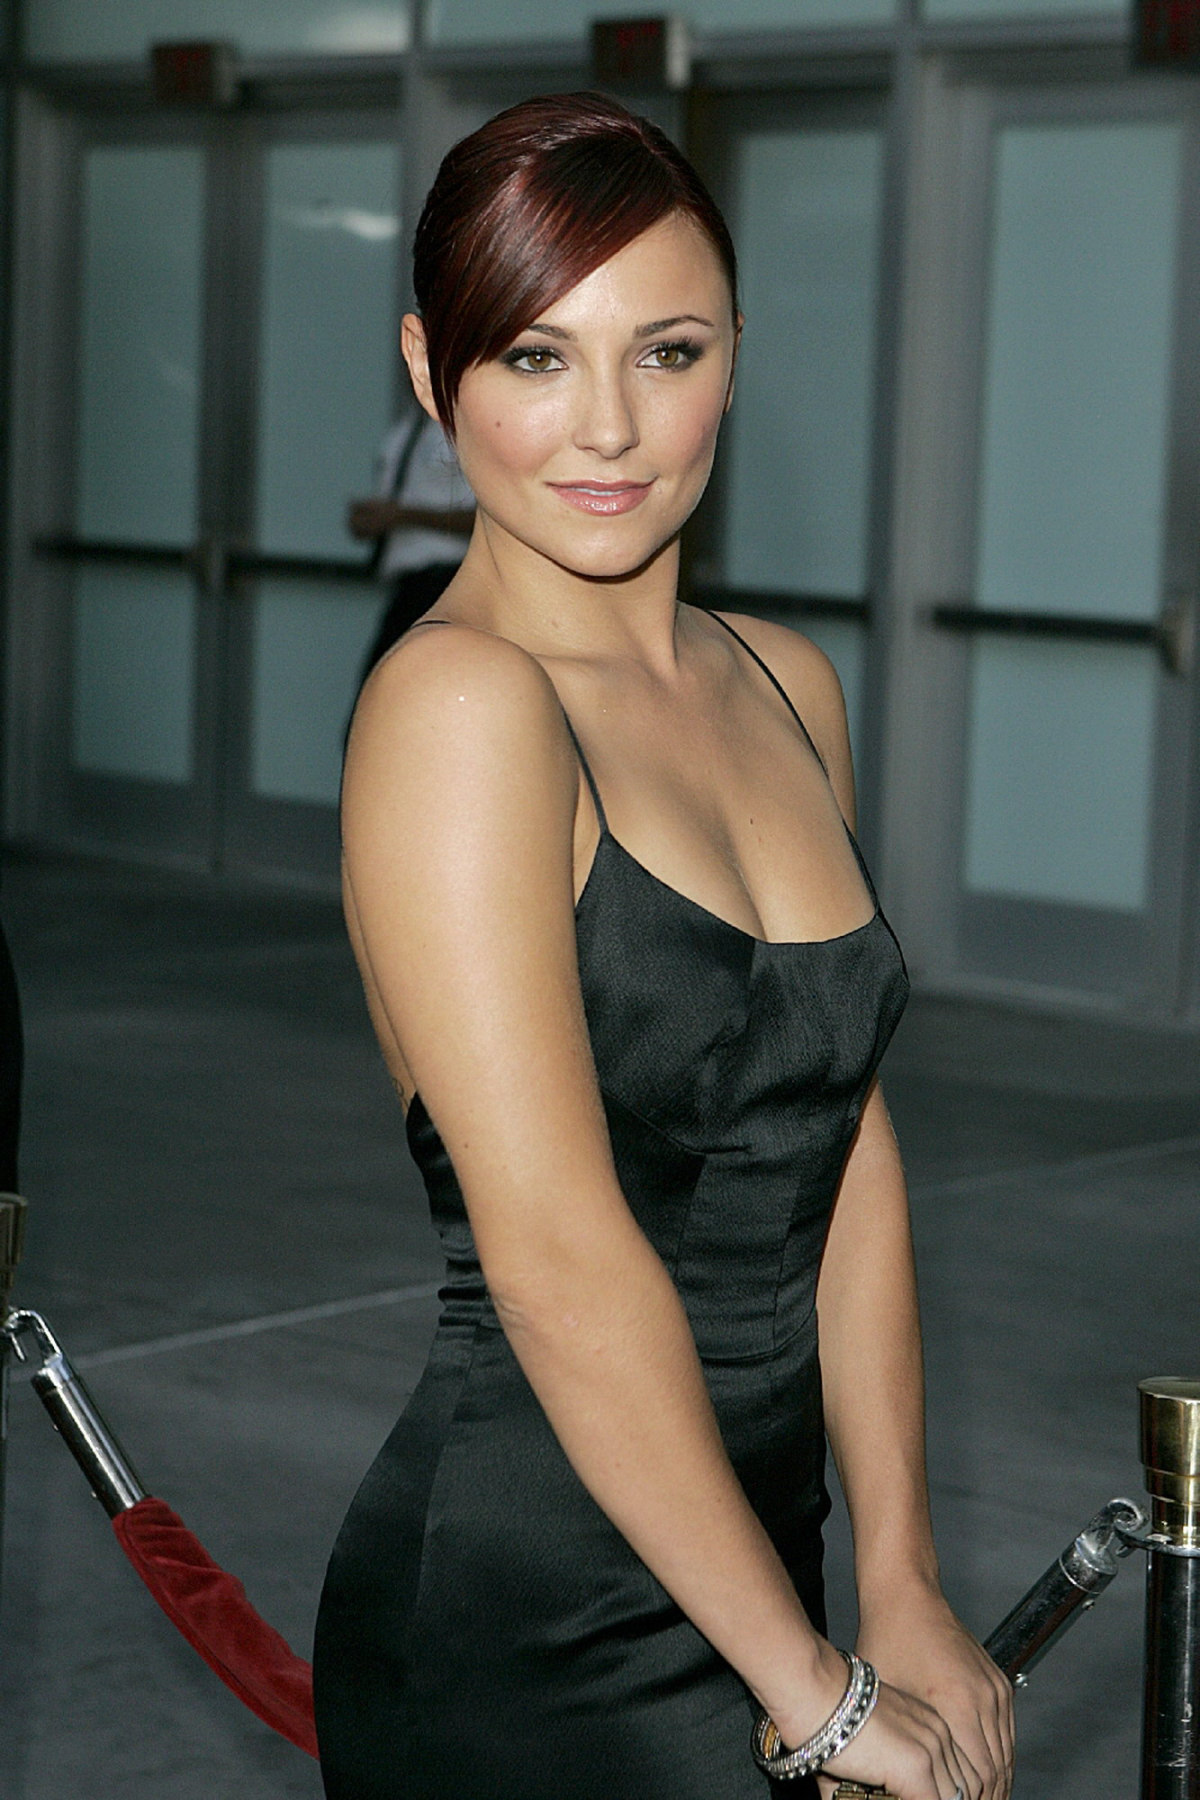 Images Brianna Evigan nudes (59 photos), Sexy, Sideboobs, Feet, swimsuit 2020